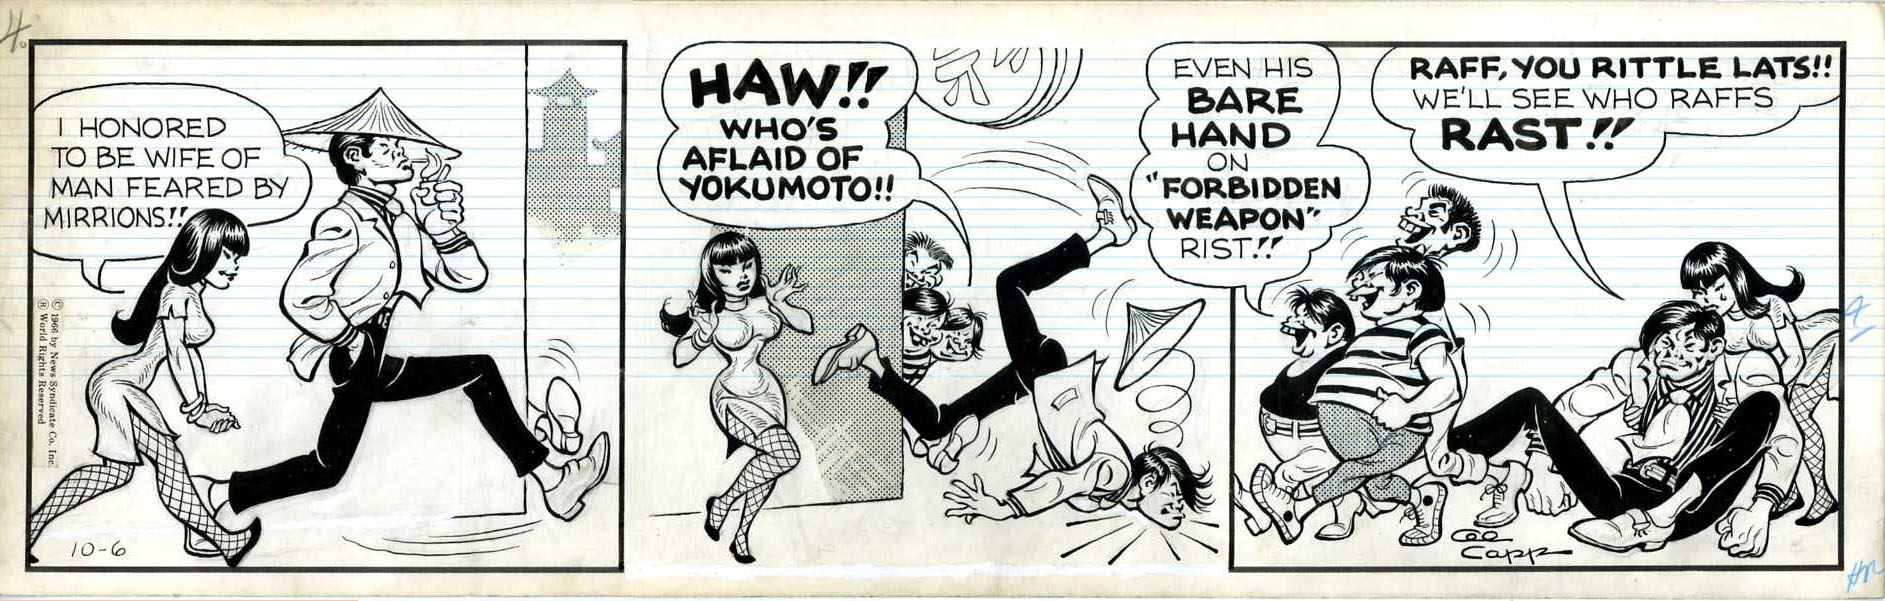 AL CAPP - LI'L ABNER DAILY COMIC STRIP DATED 10-6-66 / LI'L ABNAI YOKUMOTO